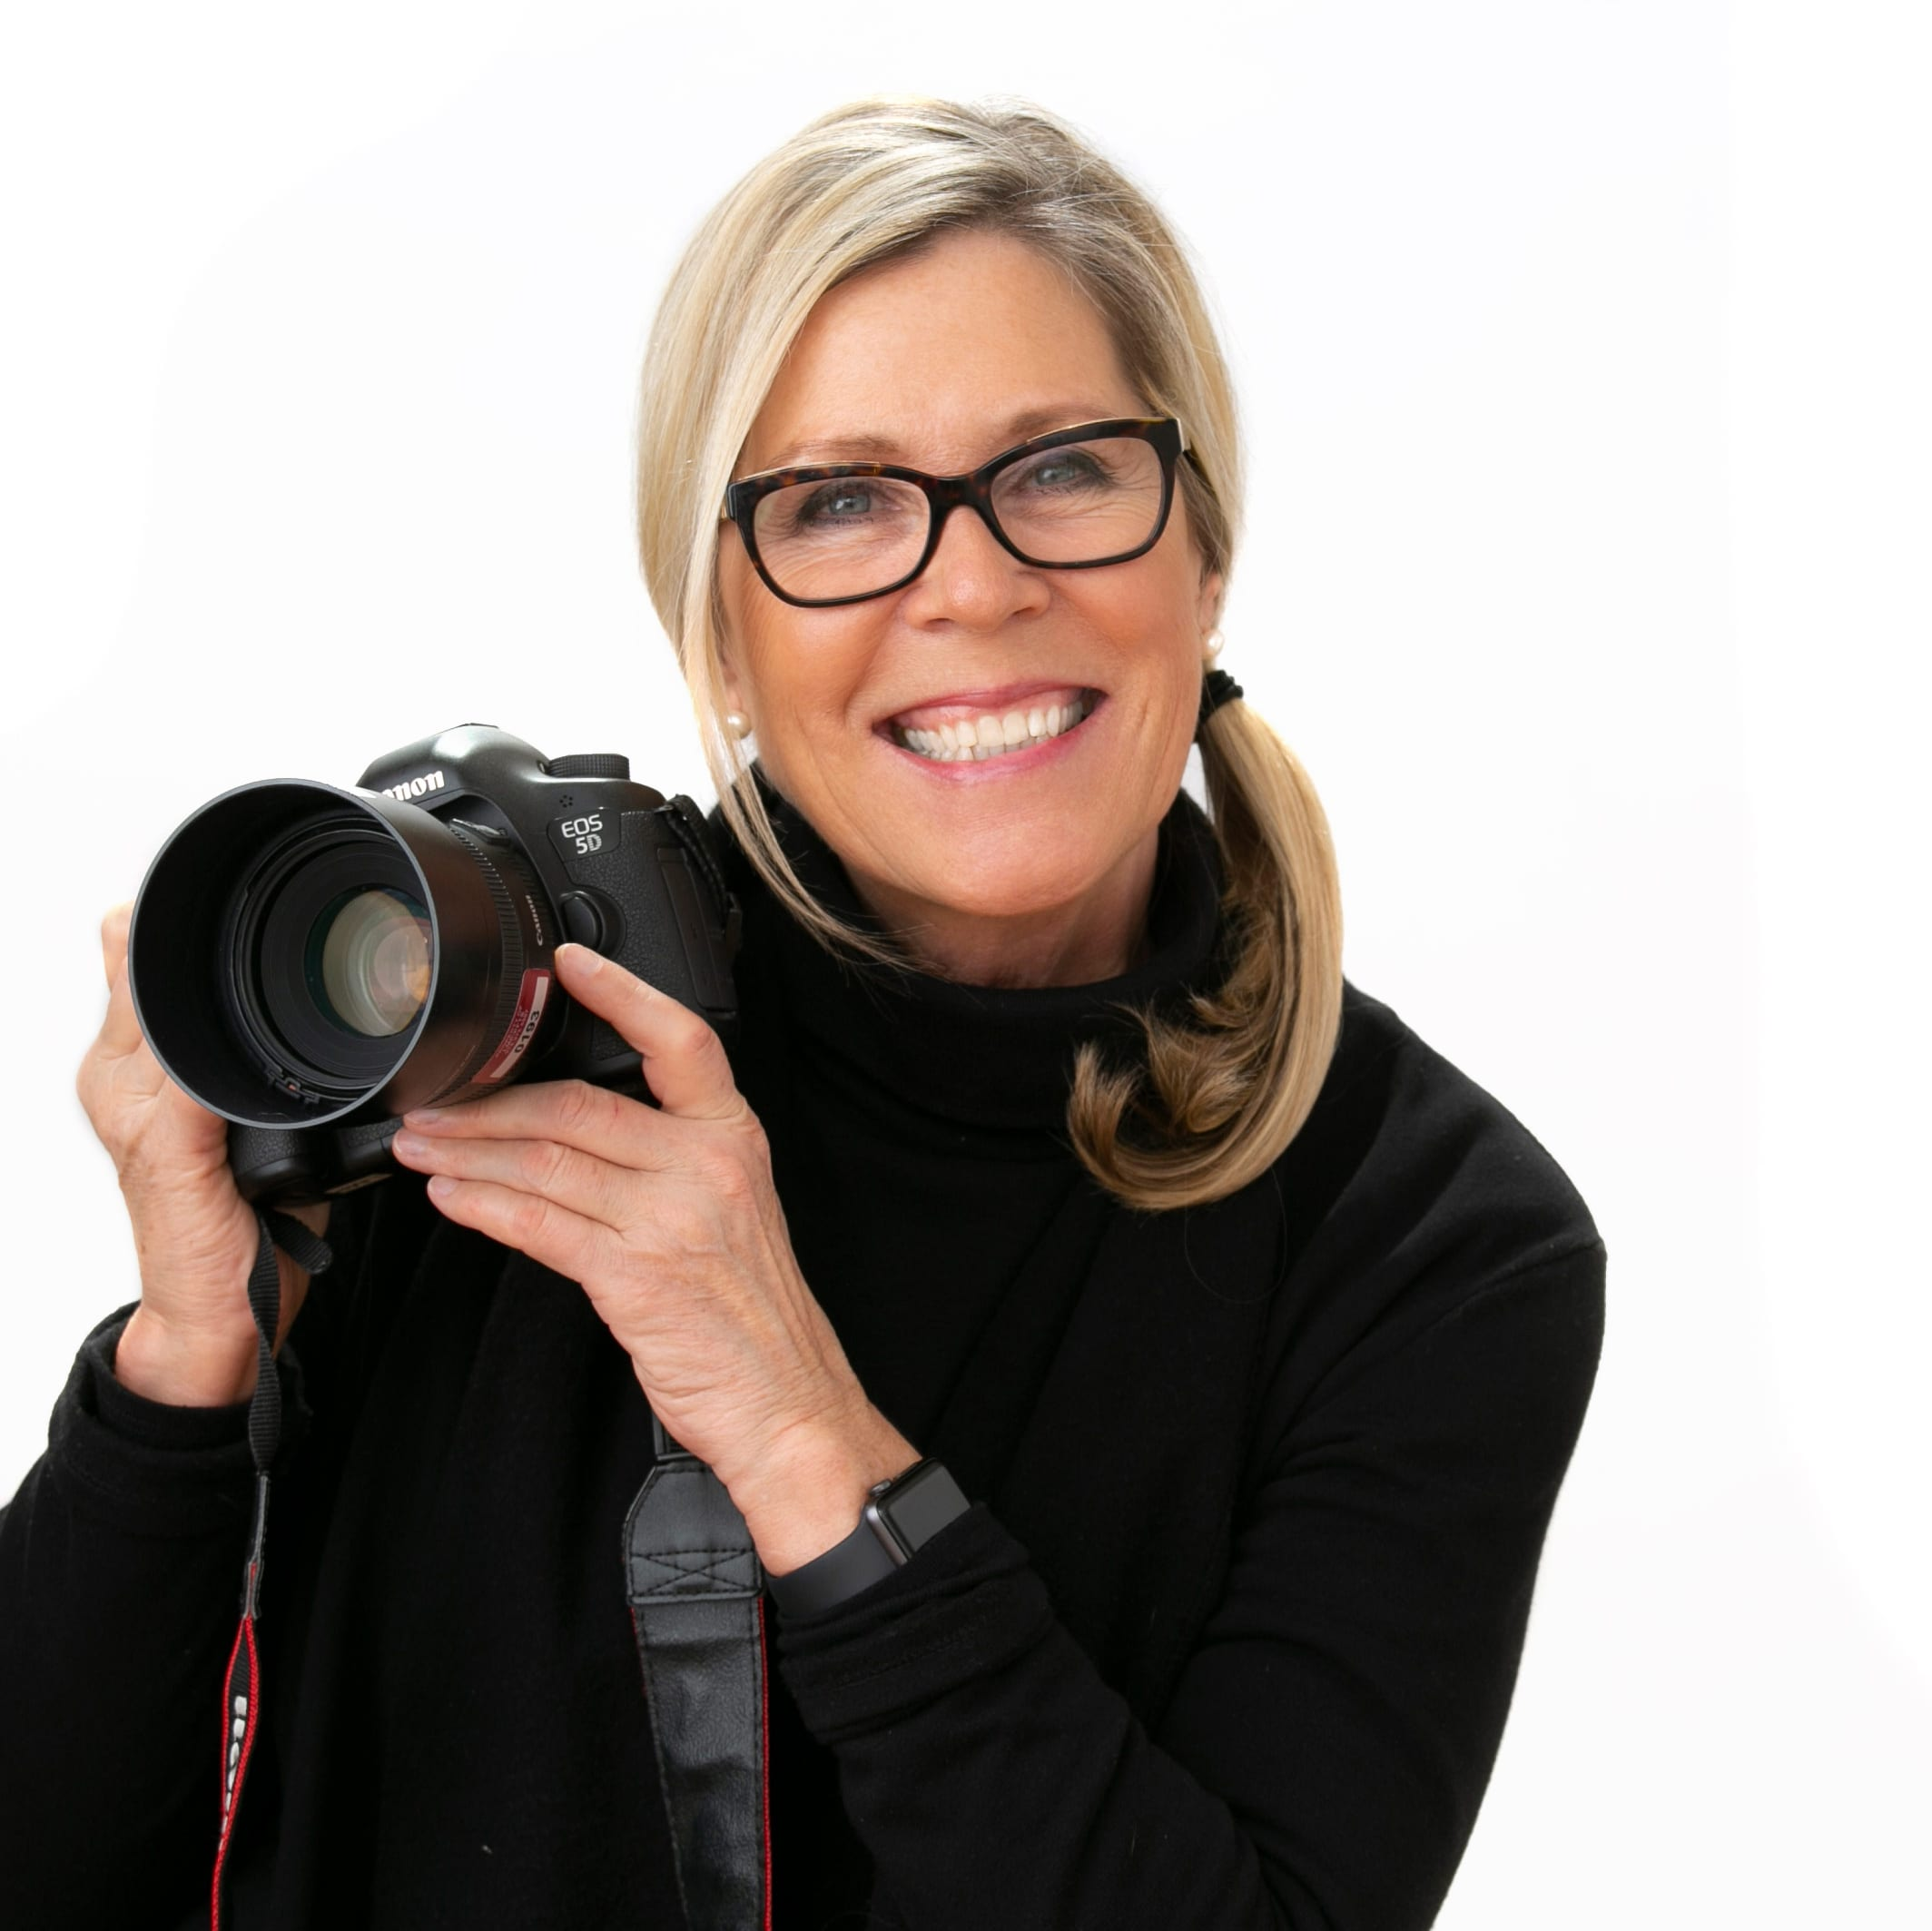 Louise Michaud Photographer holding camera and smiling